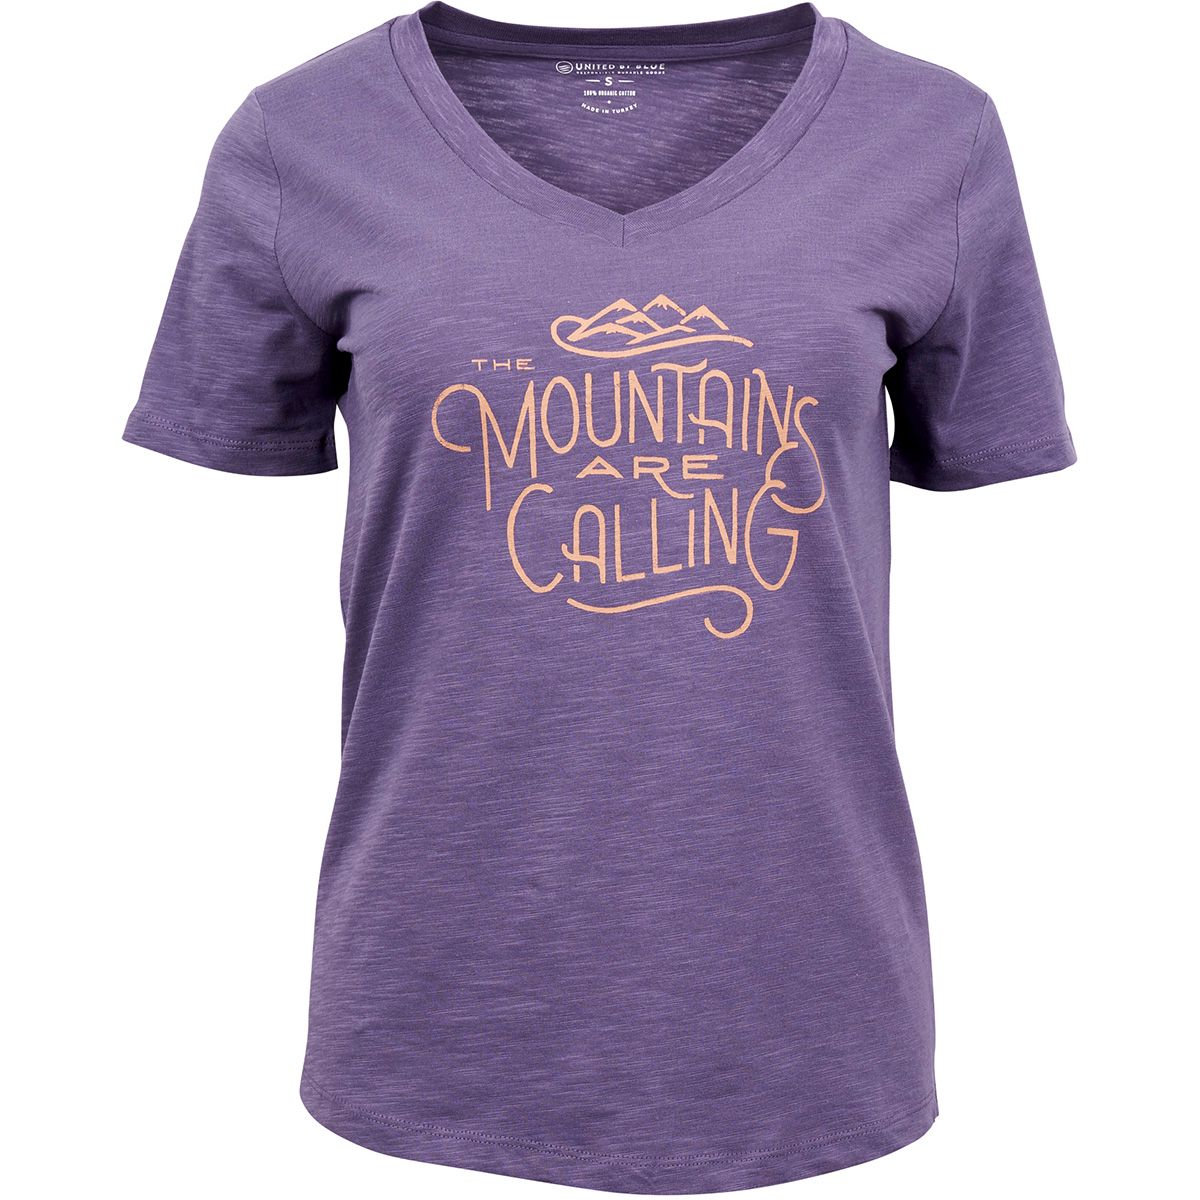 United by Blue Damen Mountain Are Calling T-Shirt (Größe S, Lila) | T-Shirts Freizeit > Damen